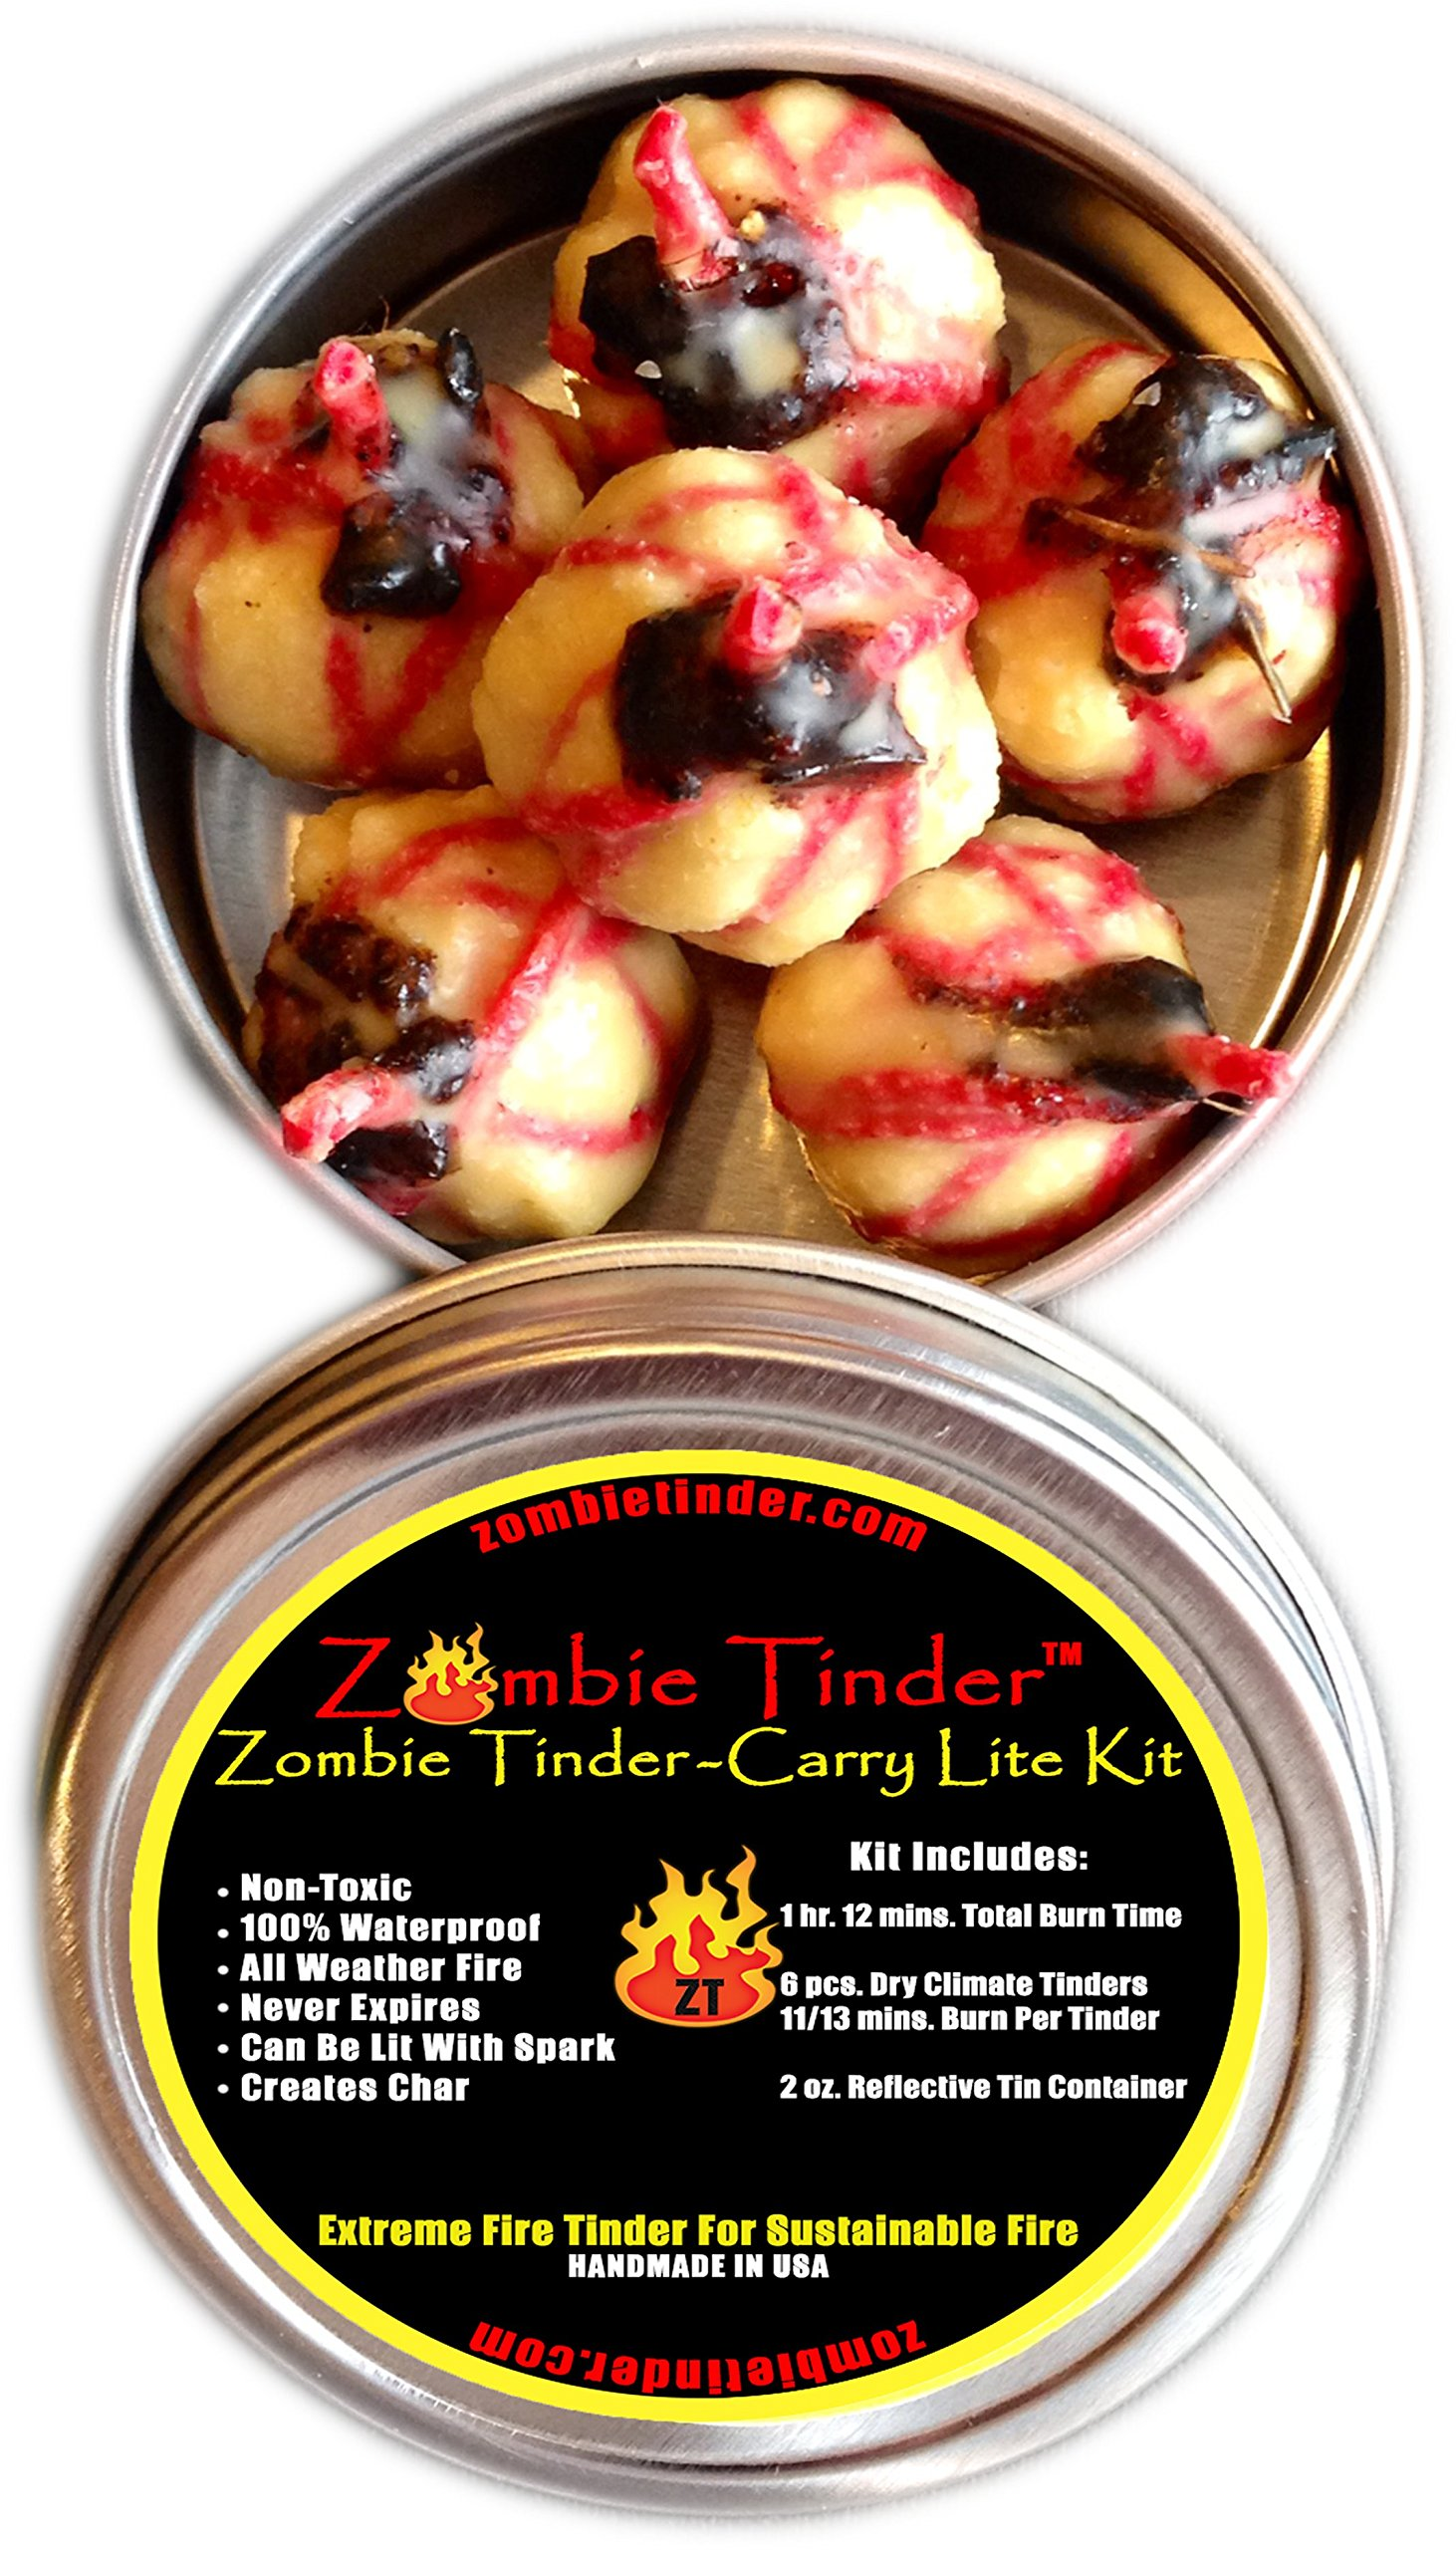 Zombie Tinder Carry Lite Kit - Extreme Fire Starter & Tinder - Over 72 Minutes of Total Burn Time - Easy Light Wick - Spark Light (3 pack) by Zombie Tinder